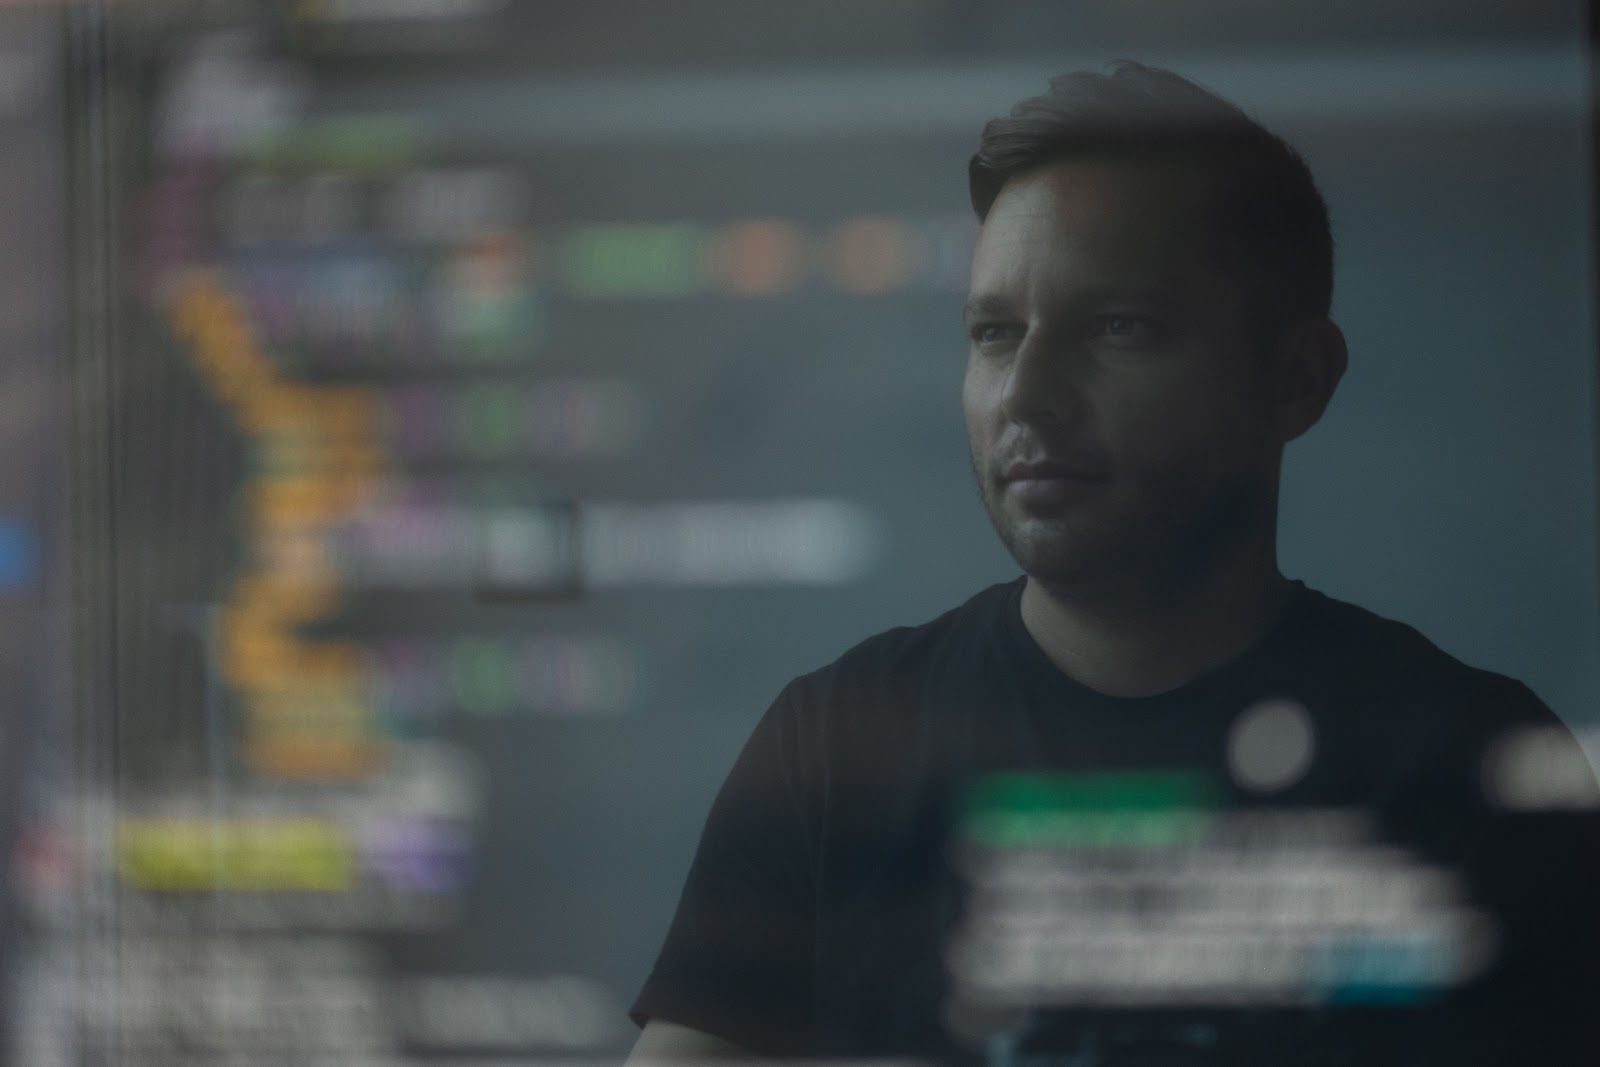 a man in a black t-shirt looking at JavaScript code that is out of focus